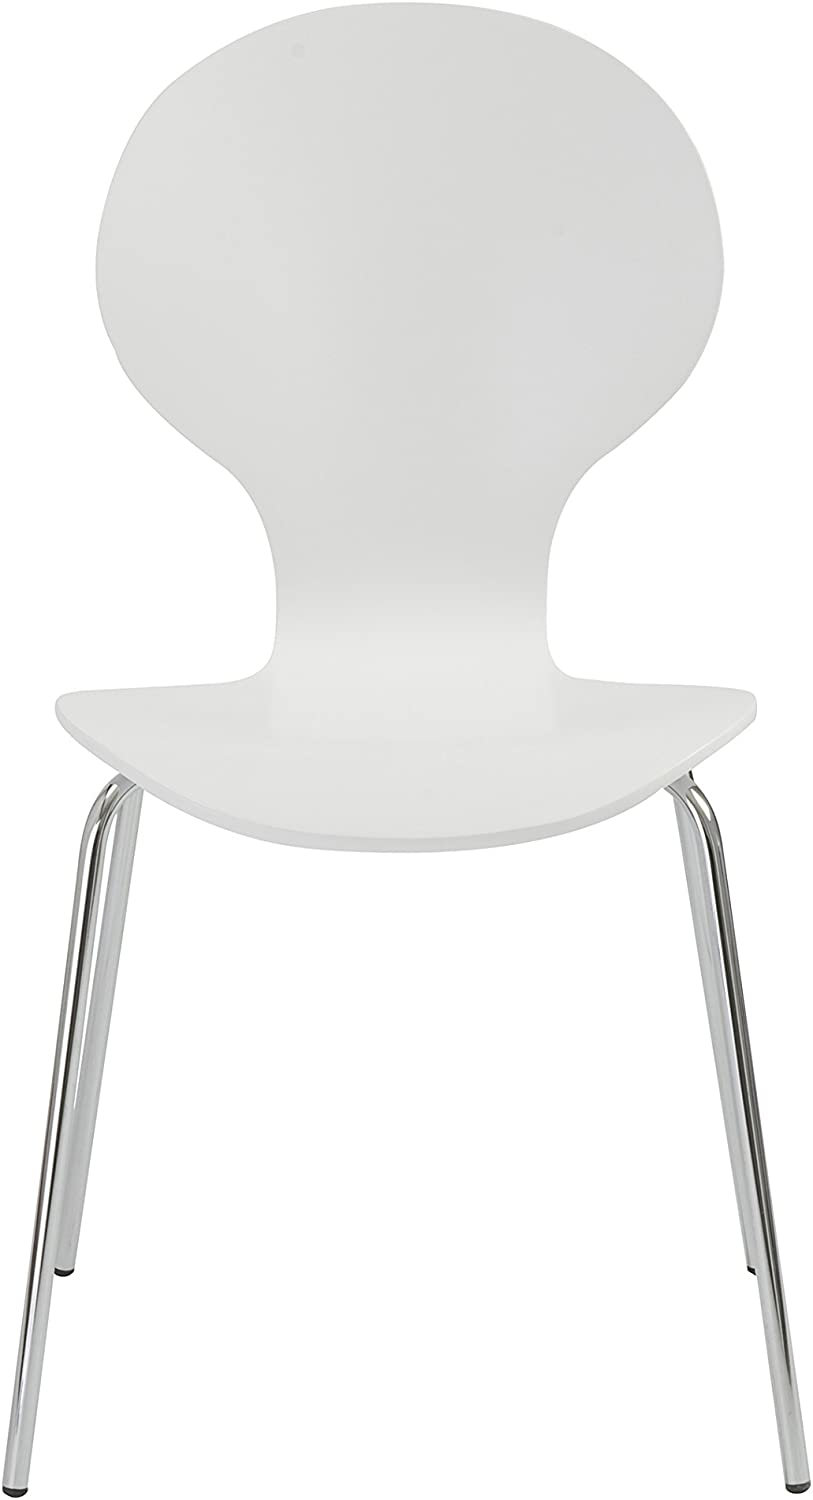 Eur Style Bunny Stacking Chair, Set of 4, White